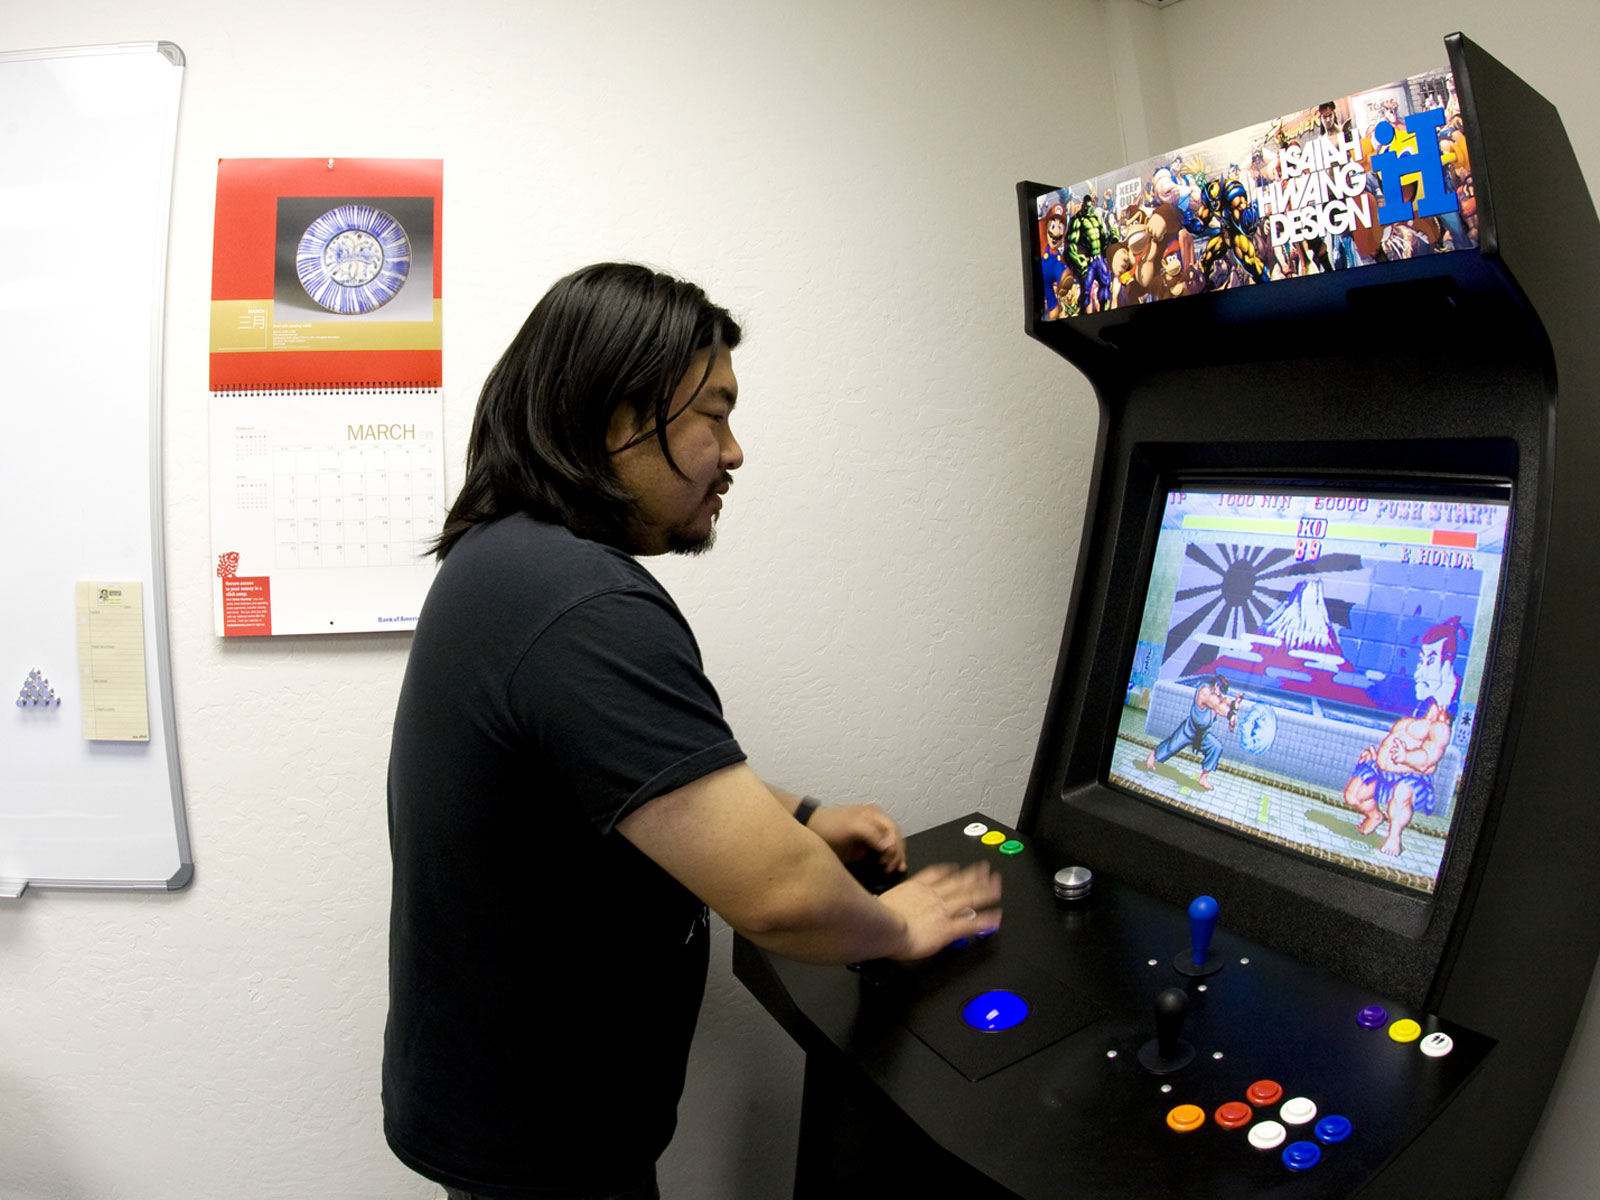 Yes…I had an arcade in my office. I miss that good, old machine. So many great memories. Street Fighter II anyone?